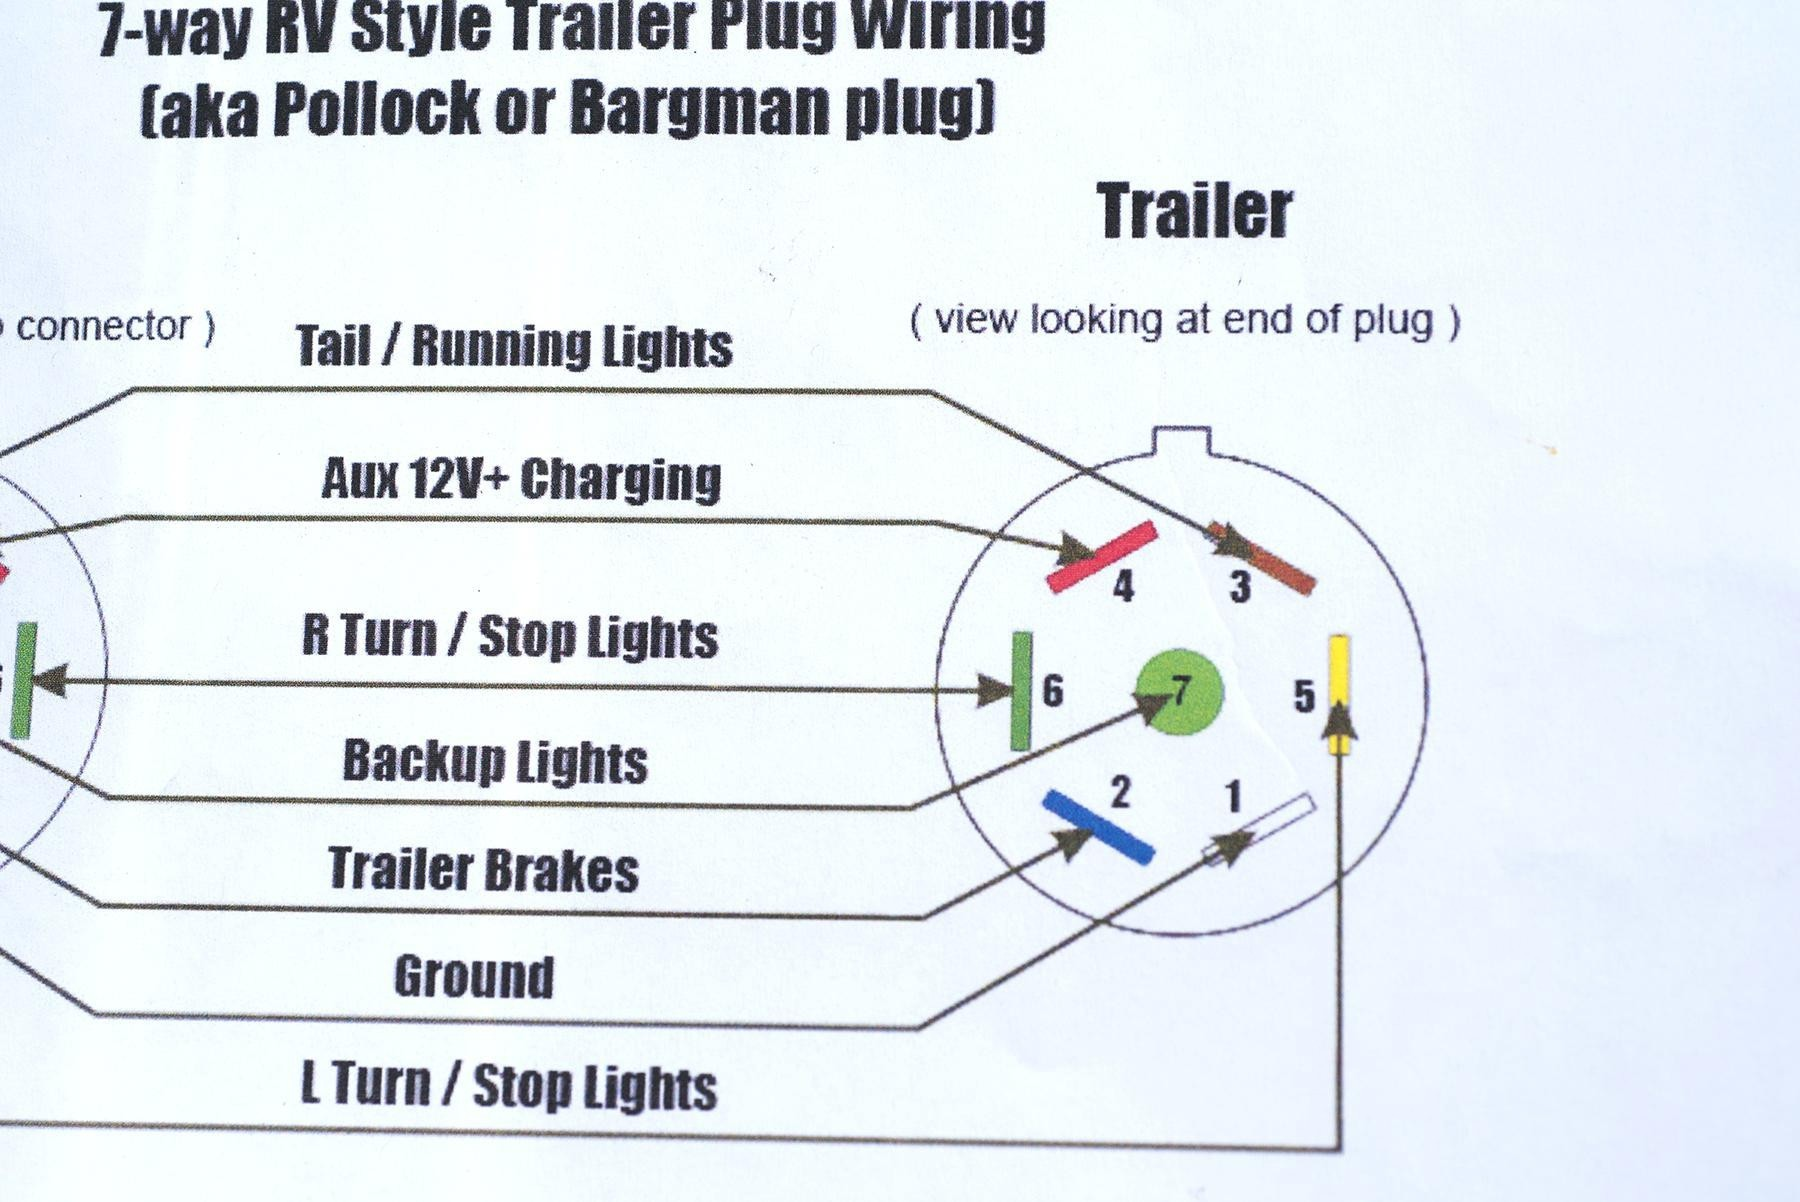 Trailer brake wiring diagram 7 way new wiring diagram image wiring diagram semi trailer lights fresh semi trailer abs wiring diagram for 7 way plug tractor asfbconference2016 Choice Image